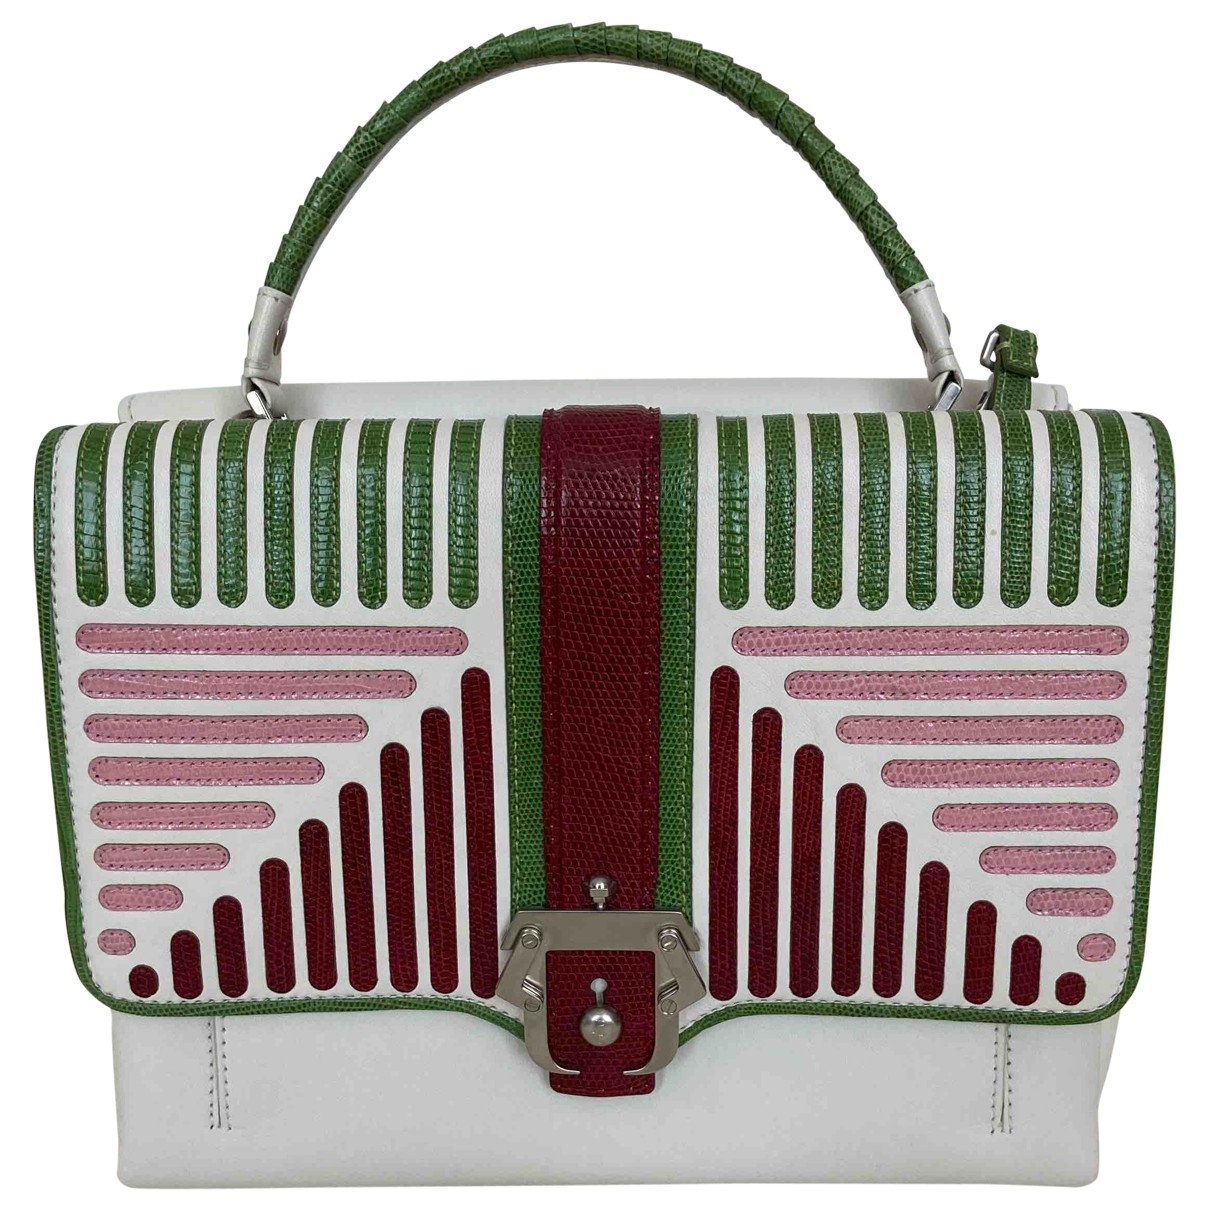 Paula Cademartori \N Multicolour Leather handbag for Women \N